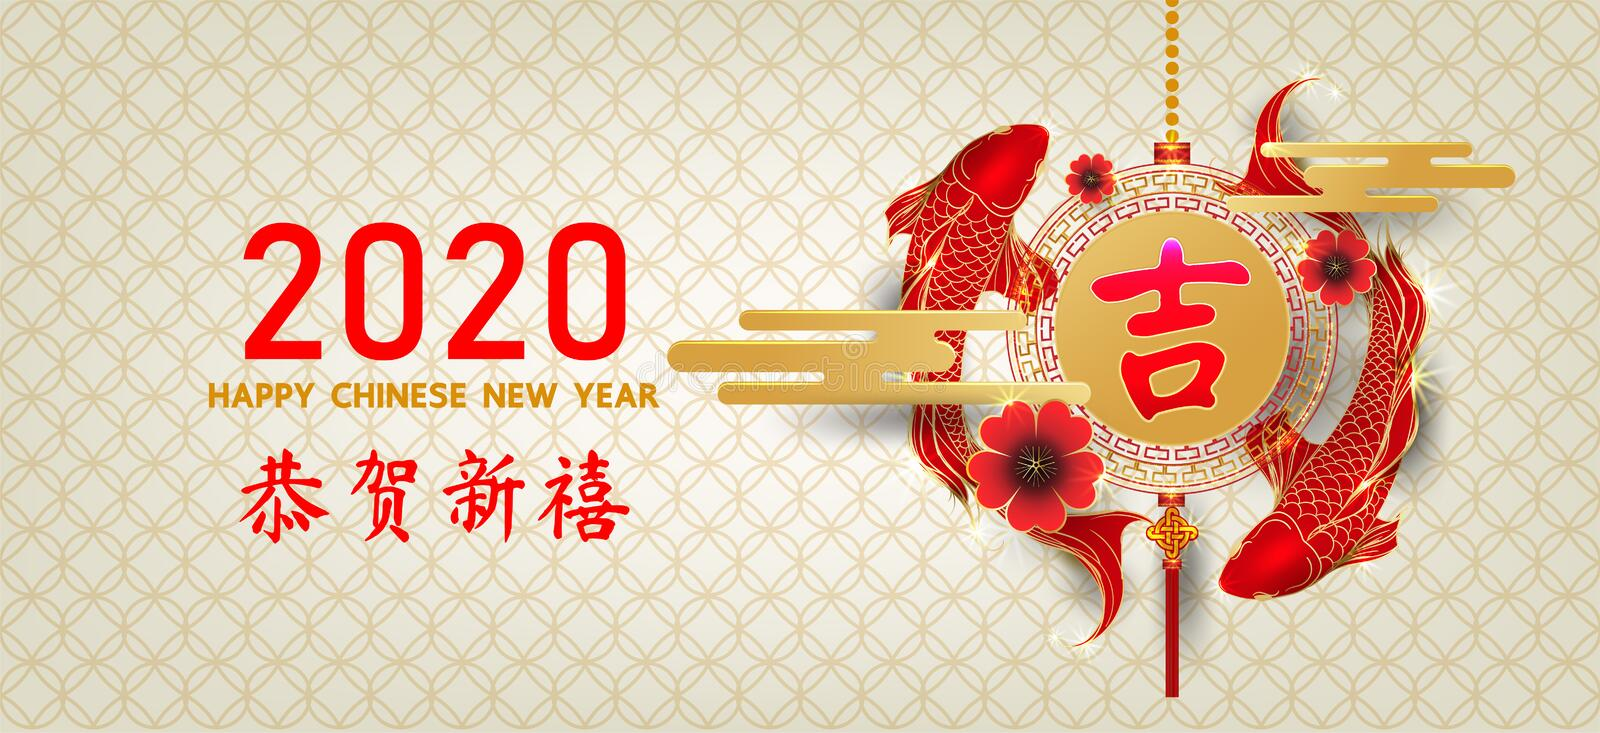 2020 Chinese new year auspicious alphabet of Chinese and ancient Chinese coins, symbols of wealth royalty free stock photo